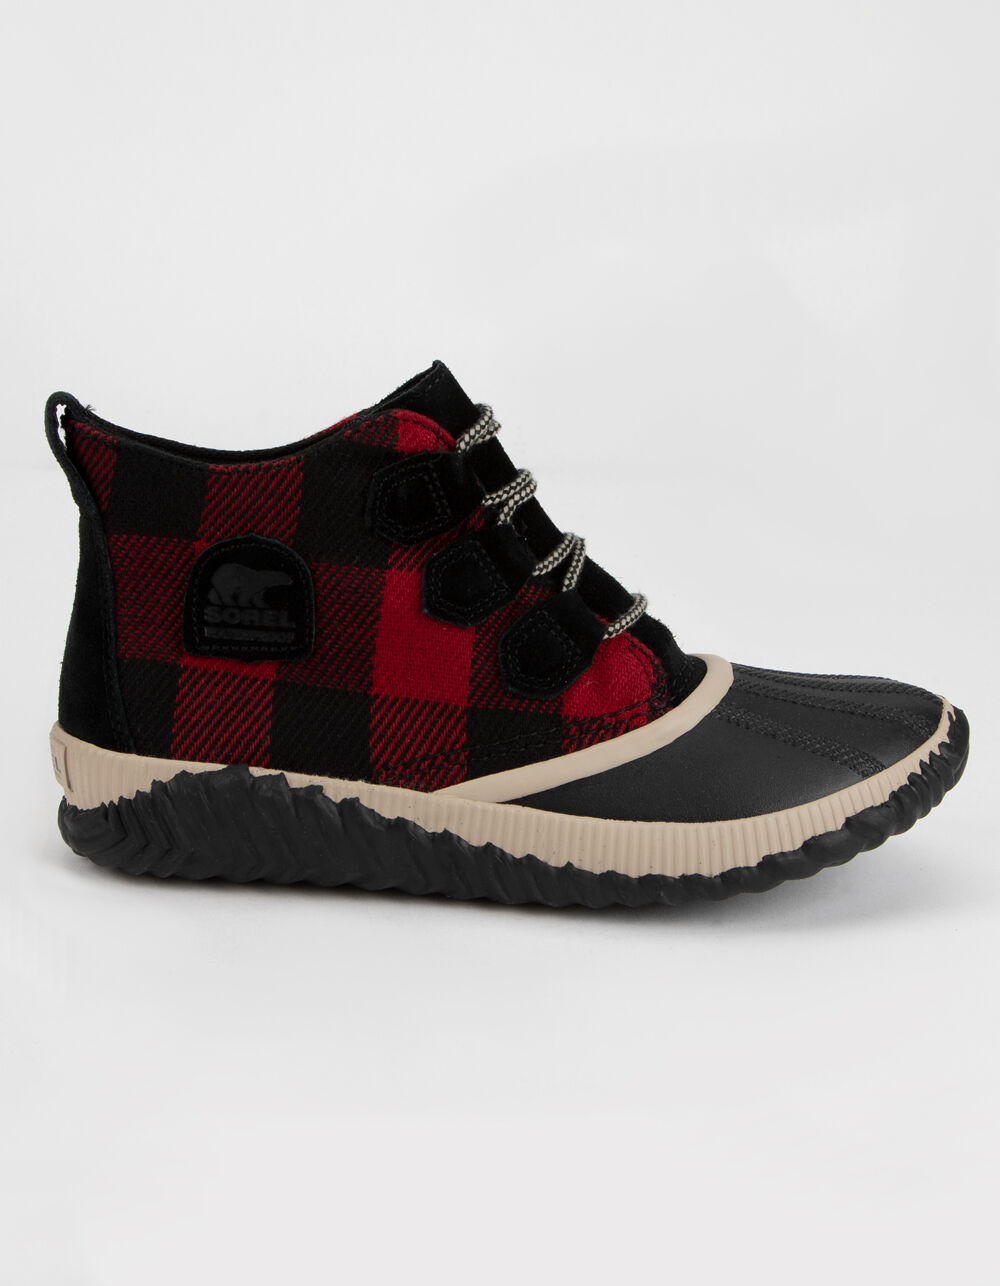 Image of SOREL Out 'N About Plus Black Boots